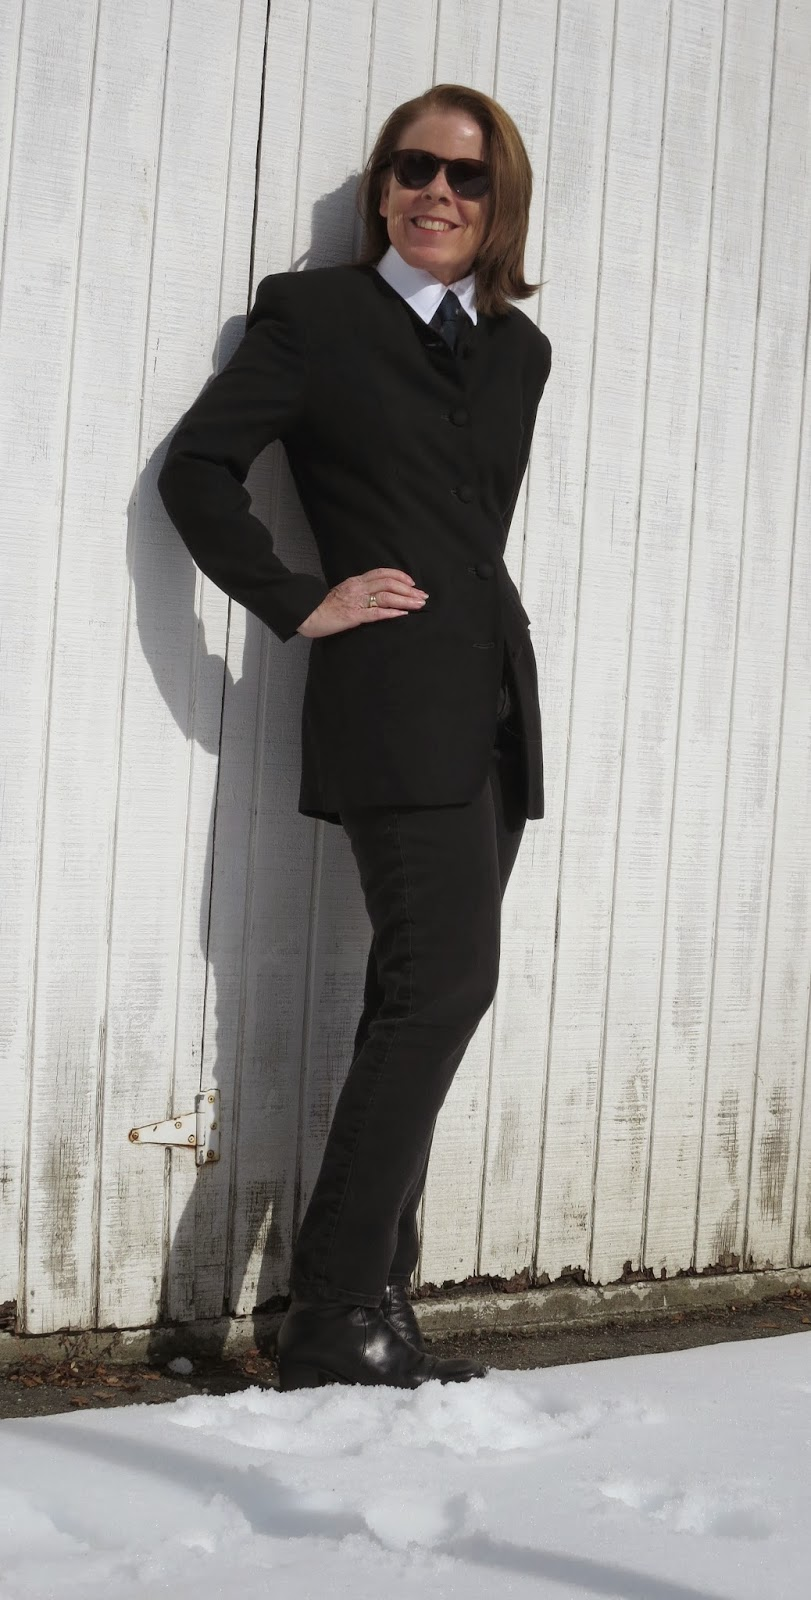 black tie and jacket for women over 50